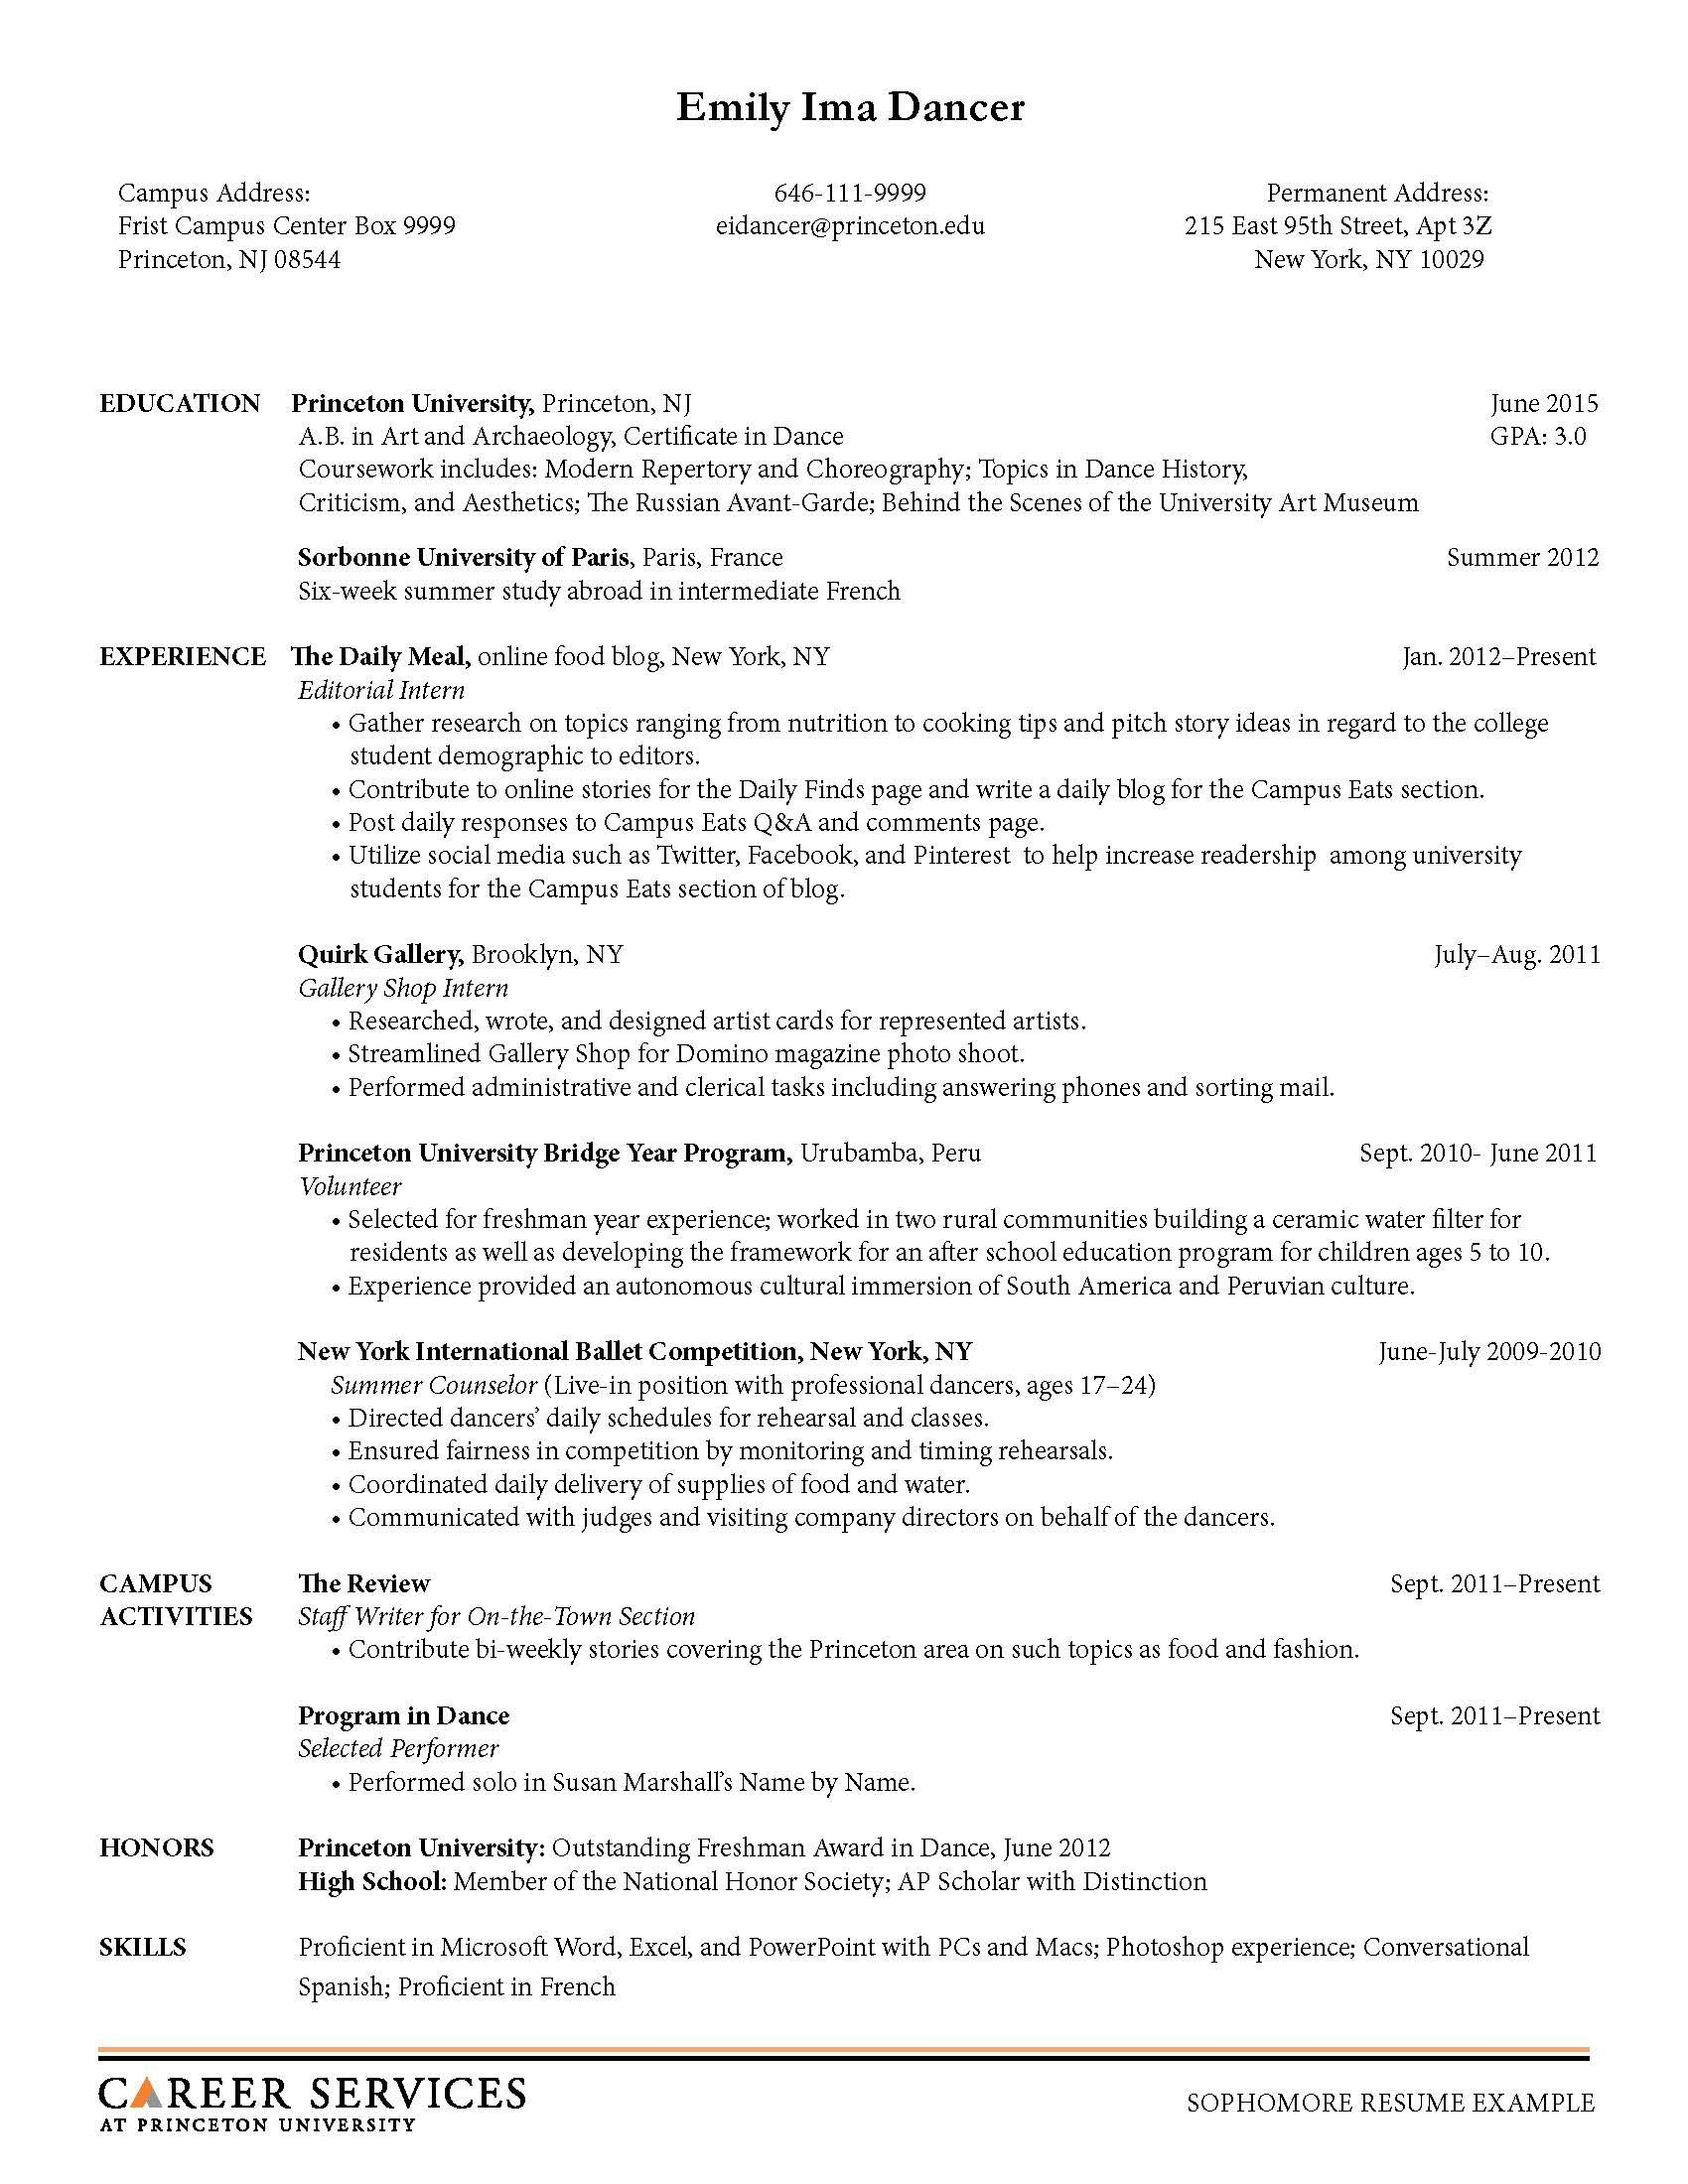 Picnictoimpeachus  Splendid Sample Resume Resume And Career On Pinterest With Likable Entry Level Resumes Besides What To Write On A Resume Furthermore Management Consulting Resume With Alluring Pages Resume Template Also How To Make A Resume For Job Application In Addition Dental Resume And Financial Analyst Resume Sample As Well As Resume Style Additionally Assistant Teacher Resume From Pinterestcom With Picnictoimpeachus  Likable Sample Resume Resume And Career On Pinterest With Alluring Entry Level Resumes Besides What To Write On A Resume Furthermore Management Consulting Resume And Splendid Pages Resume Template Also How To Make A Resume For Job Application In Addition Dental Resume From Pinterestcom